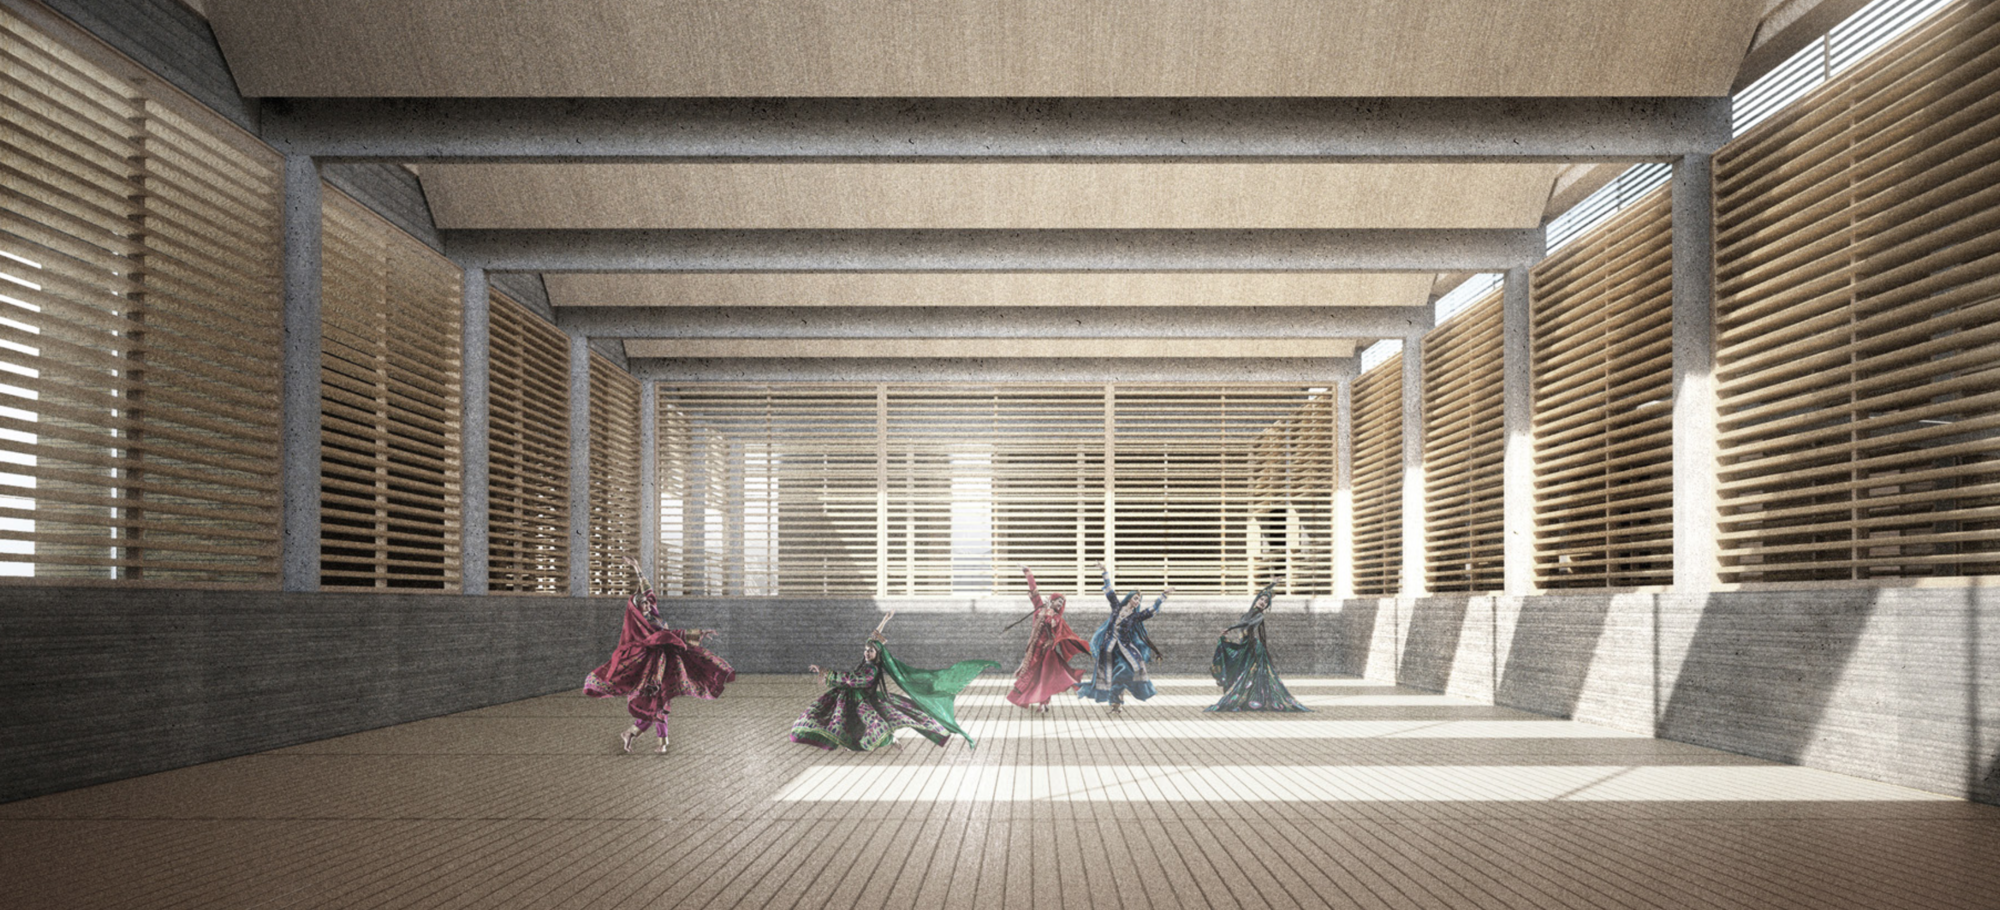 Runner Up [2]: Performance Space. Image Courtesy of UNESCO